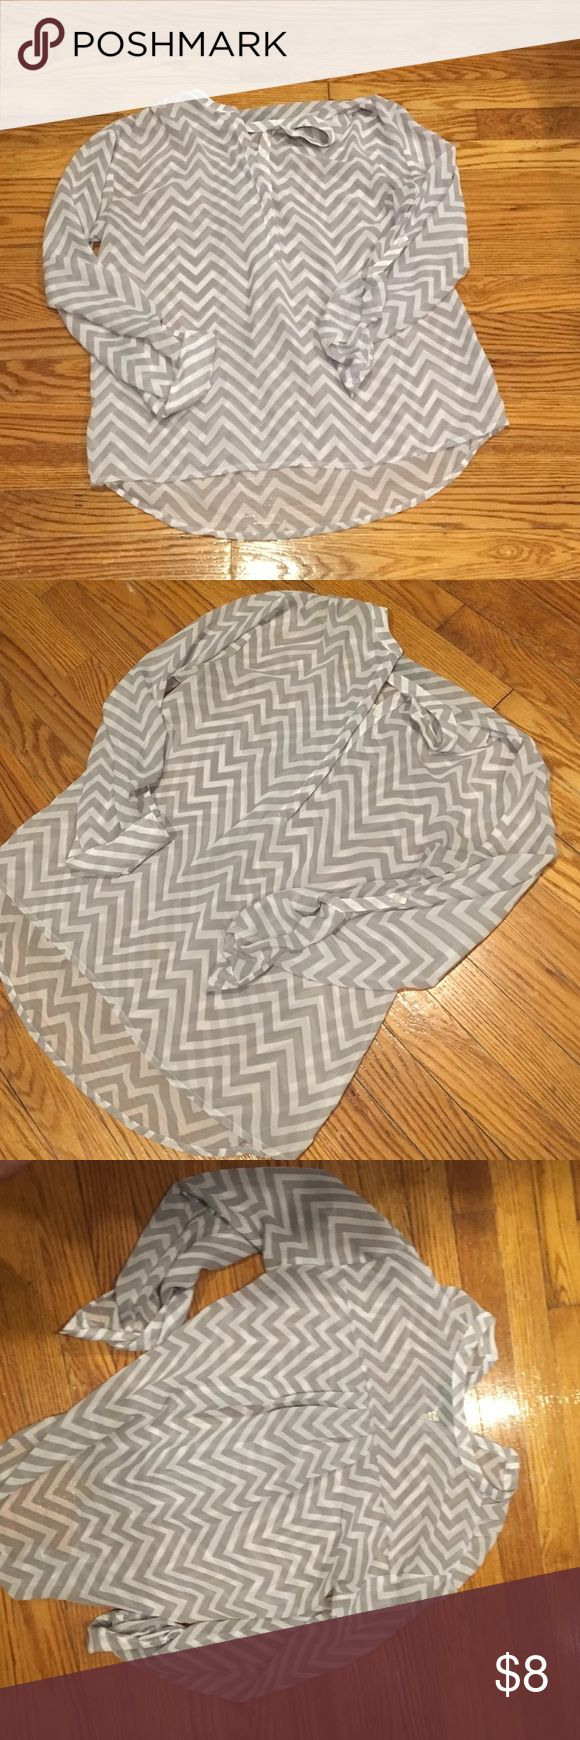 Chevron Blouse Sheer chevron blouse. Gray and white a.n.a Tops Blouses